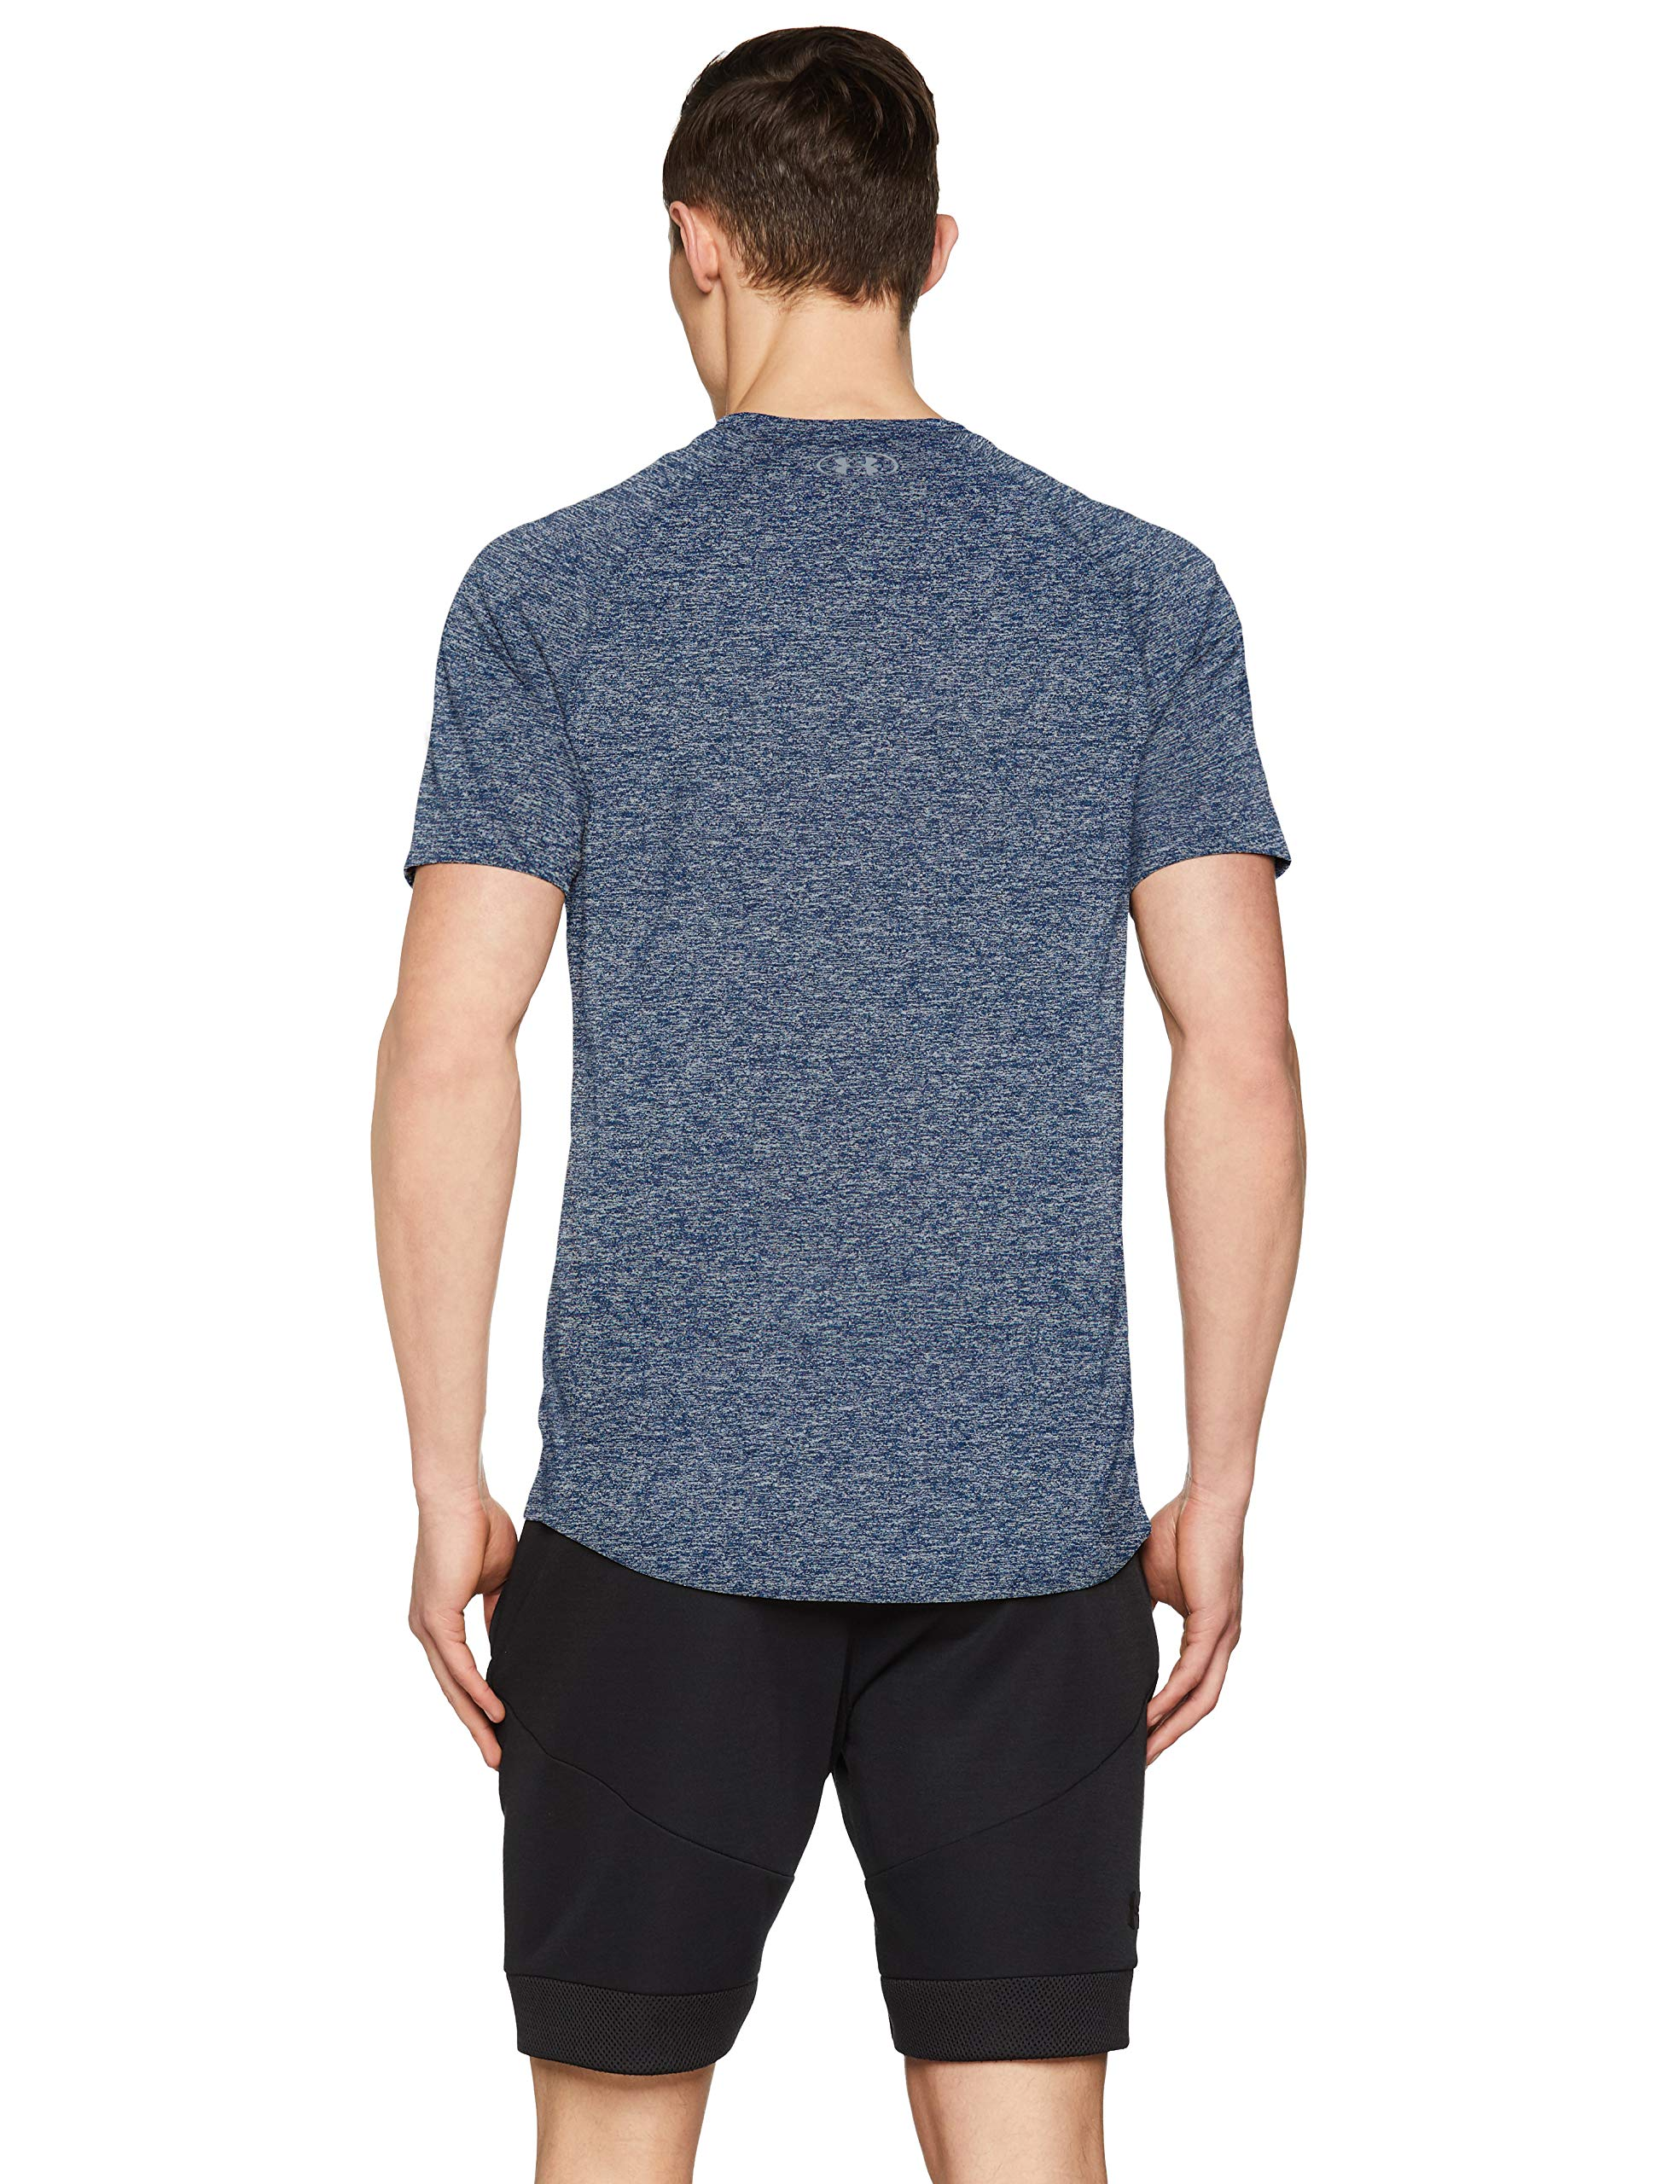 Under Armour Men's Tech 2.0 Short Sleeve T-Shirt, Academy (409)/Steel, 3X-Large by Under Armour (Image #2)